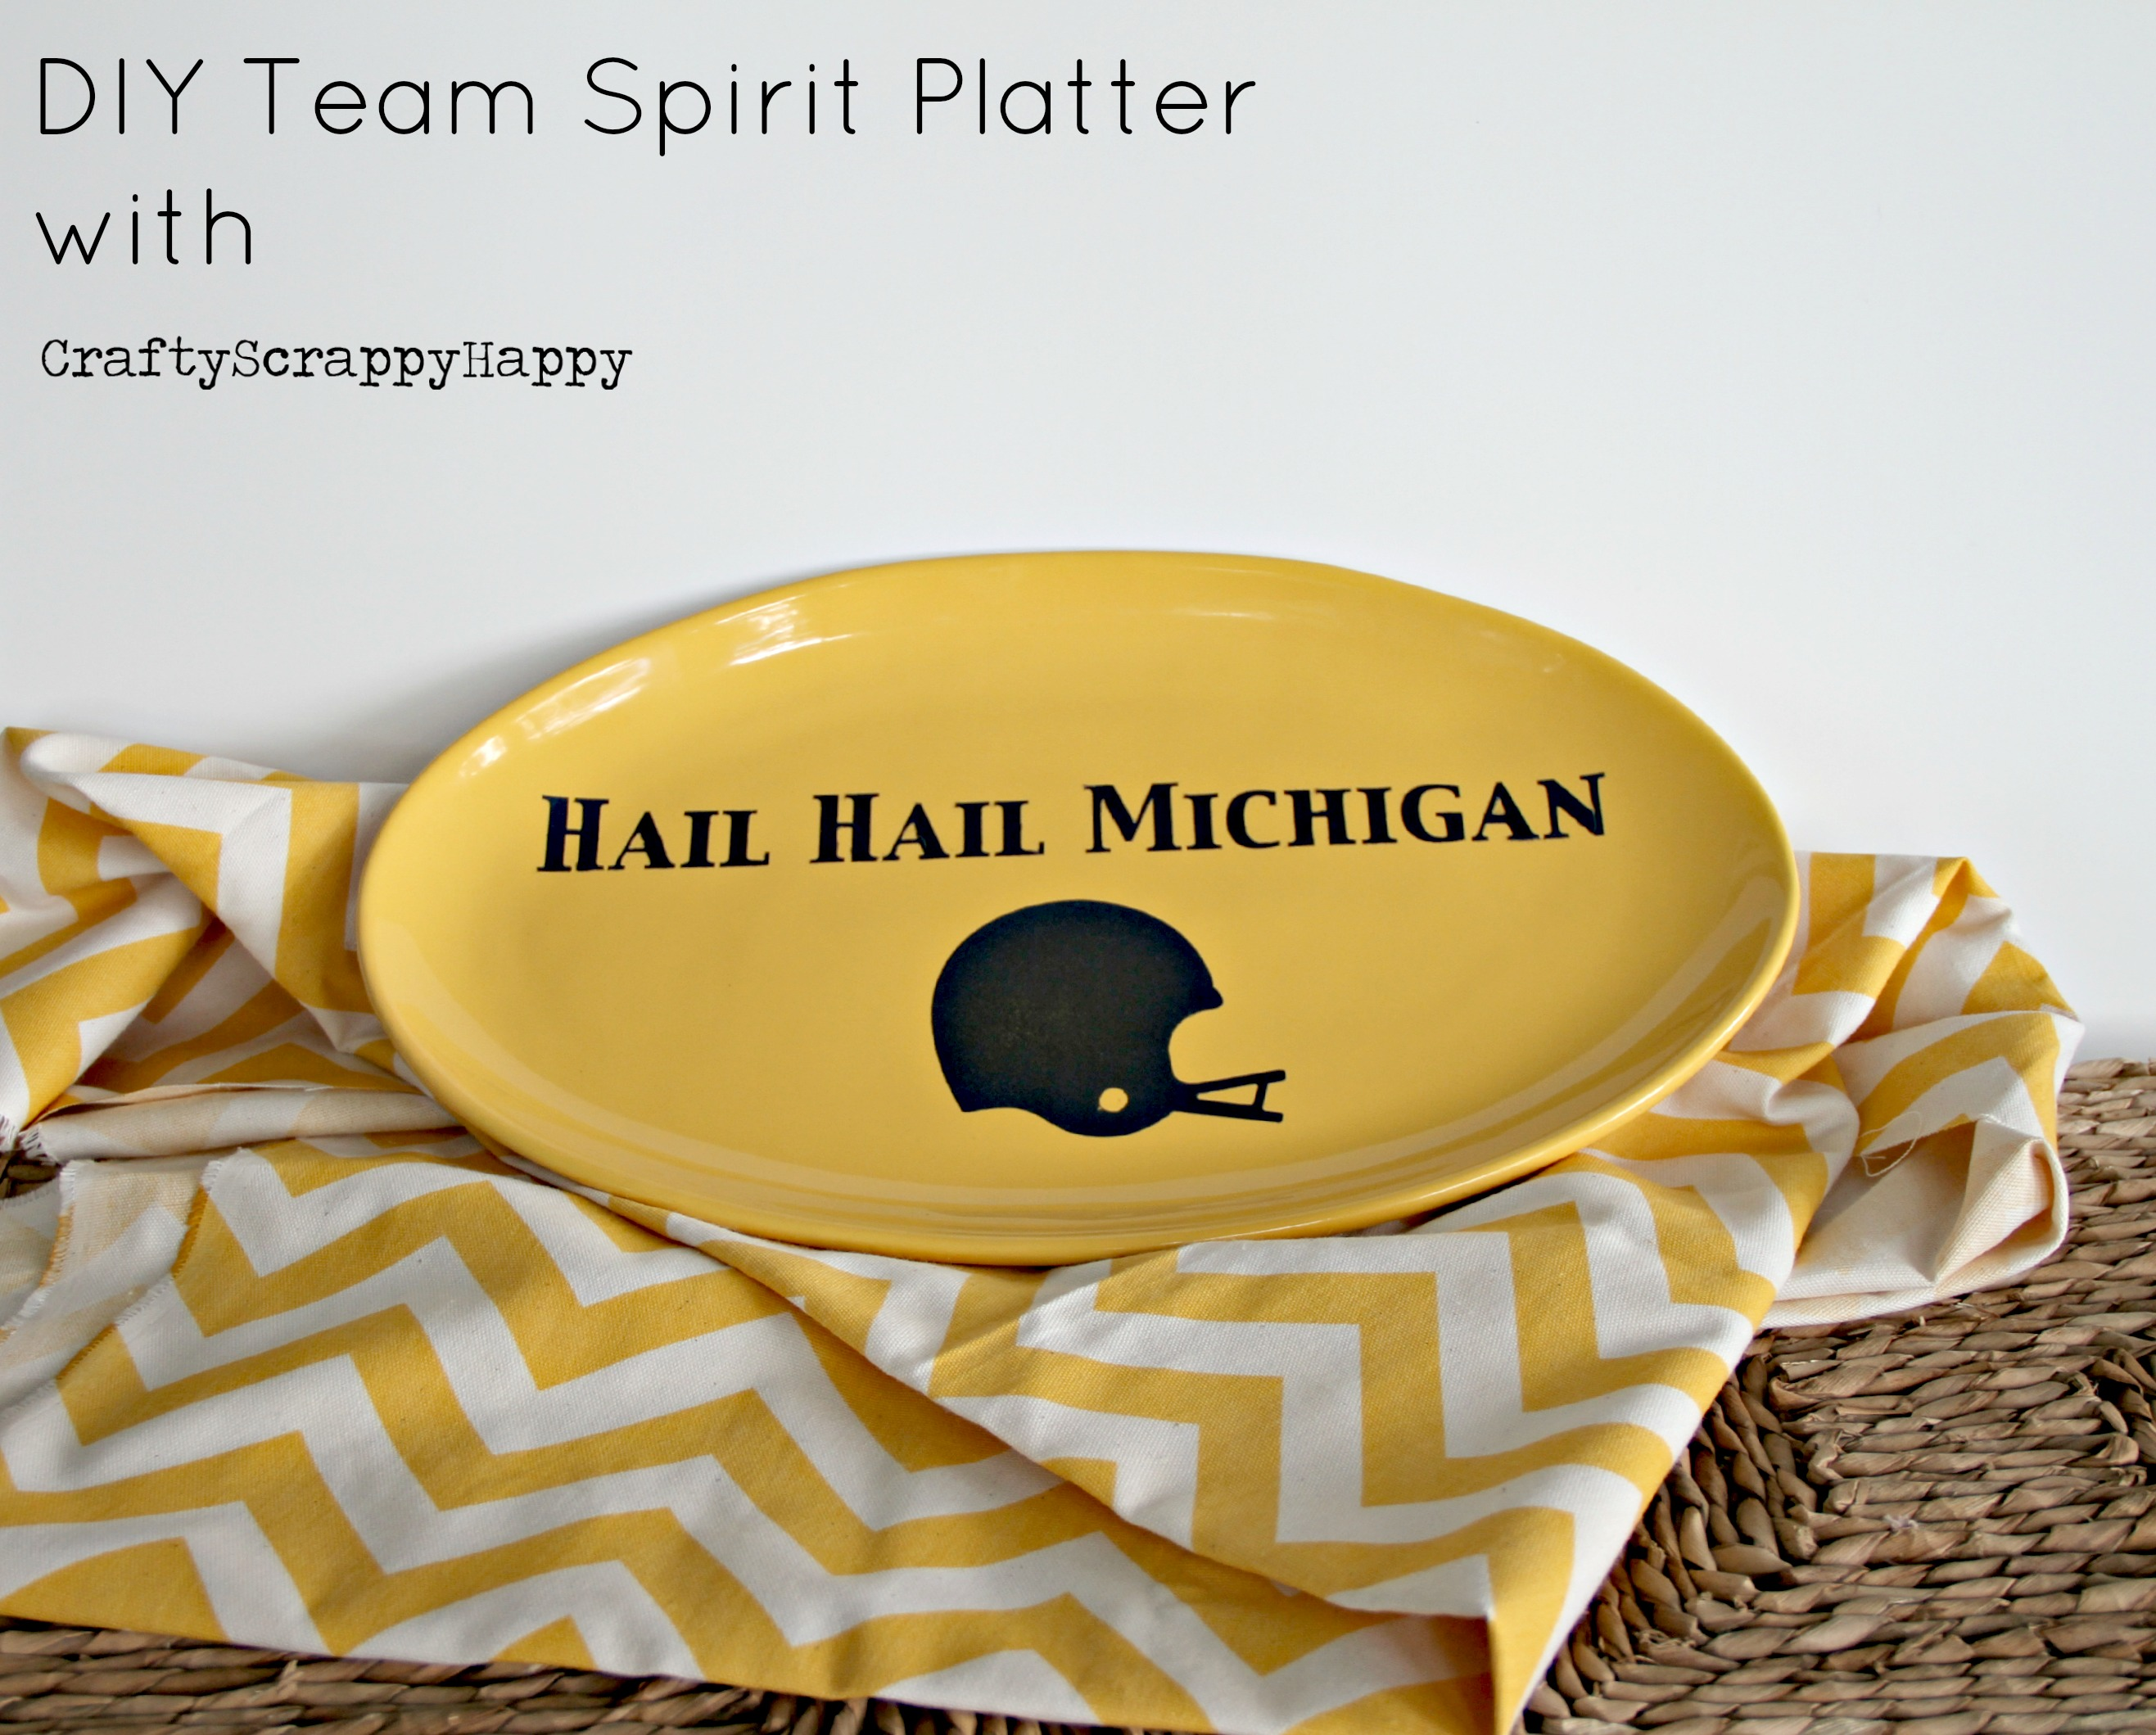 DIY Team Spirit Platter with Crafty Scrappy Happy